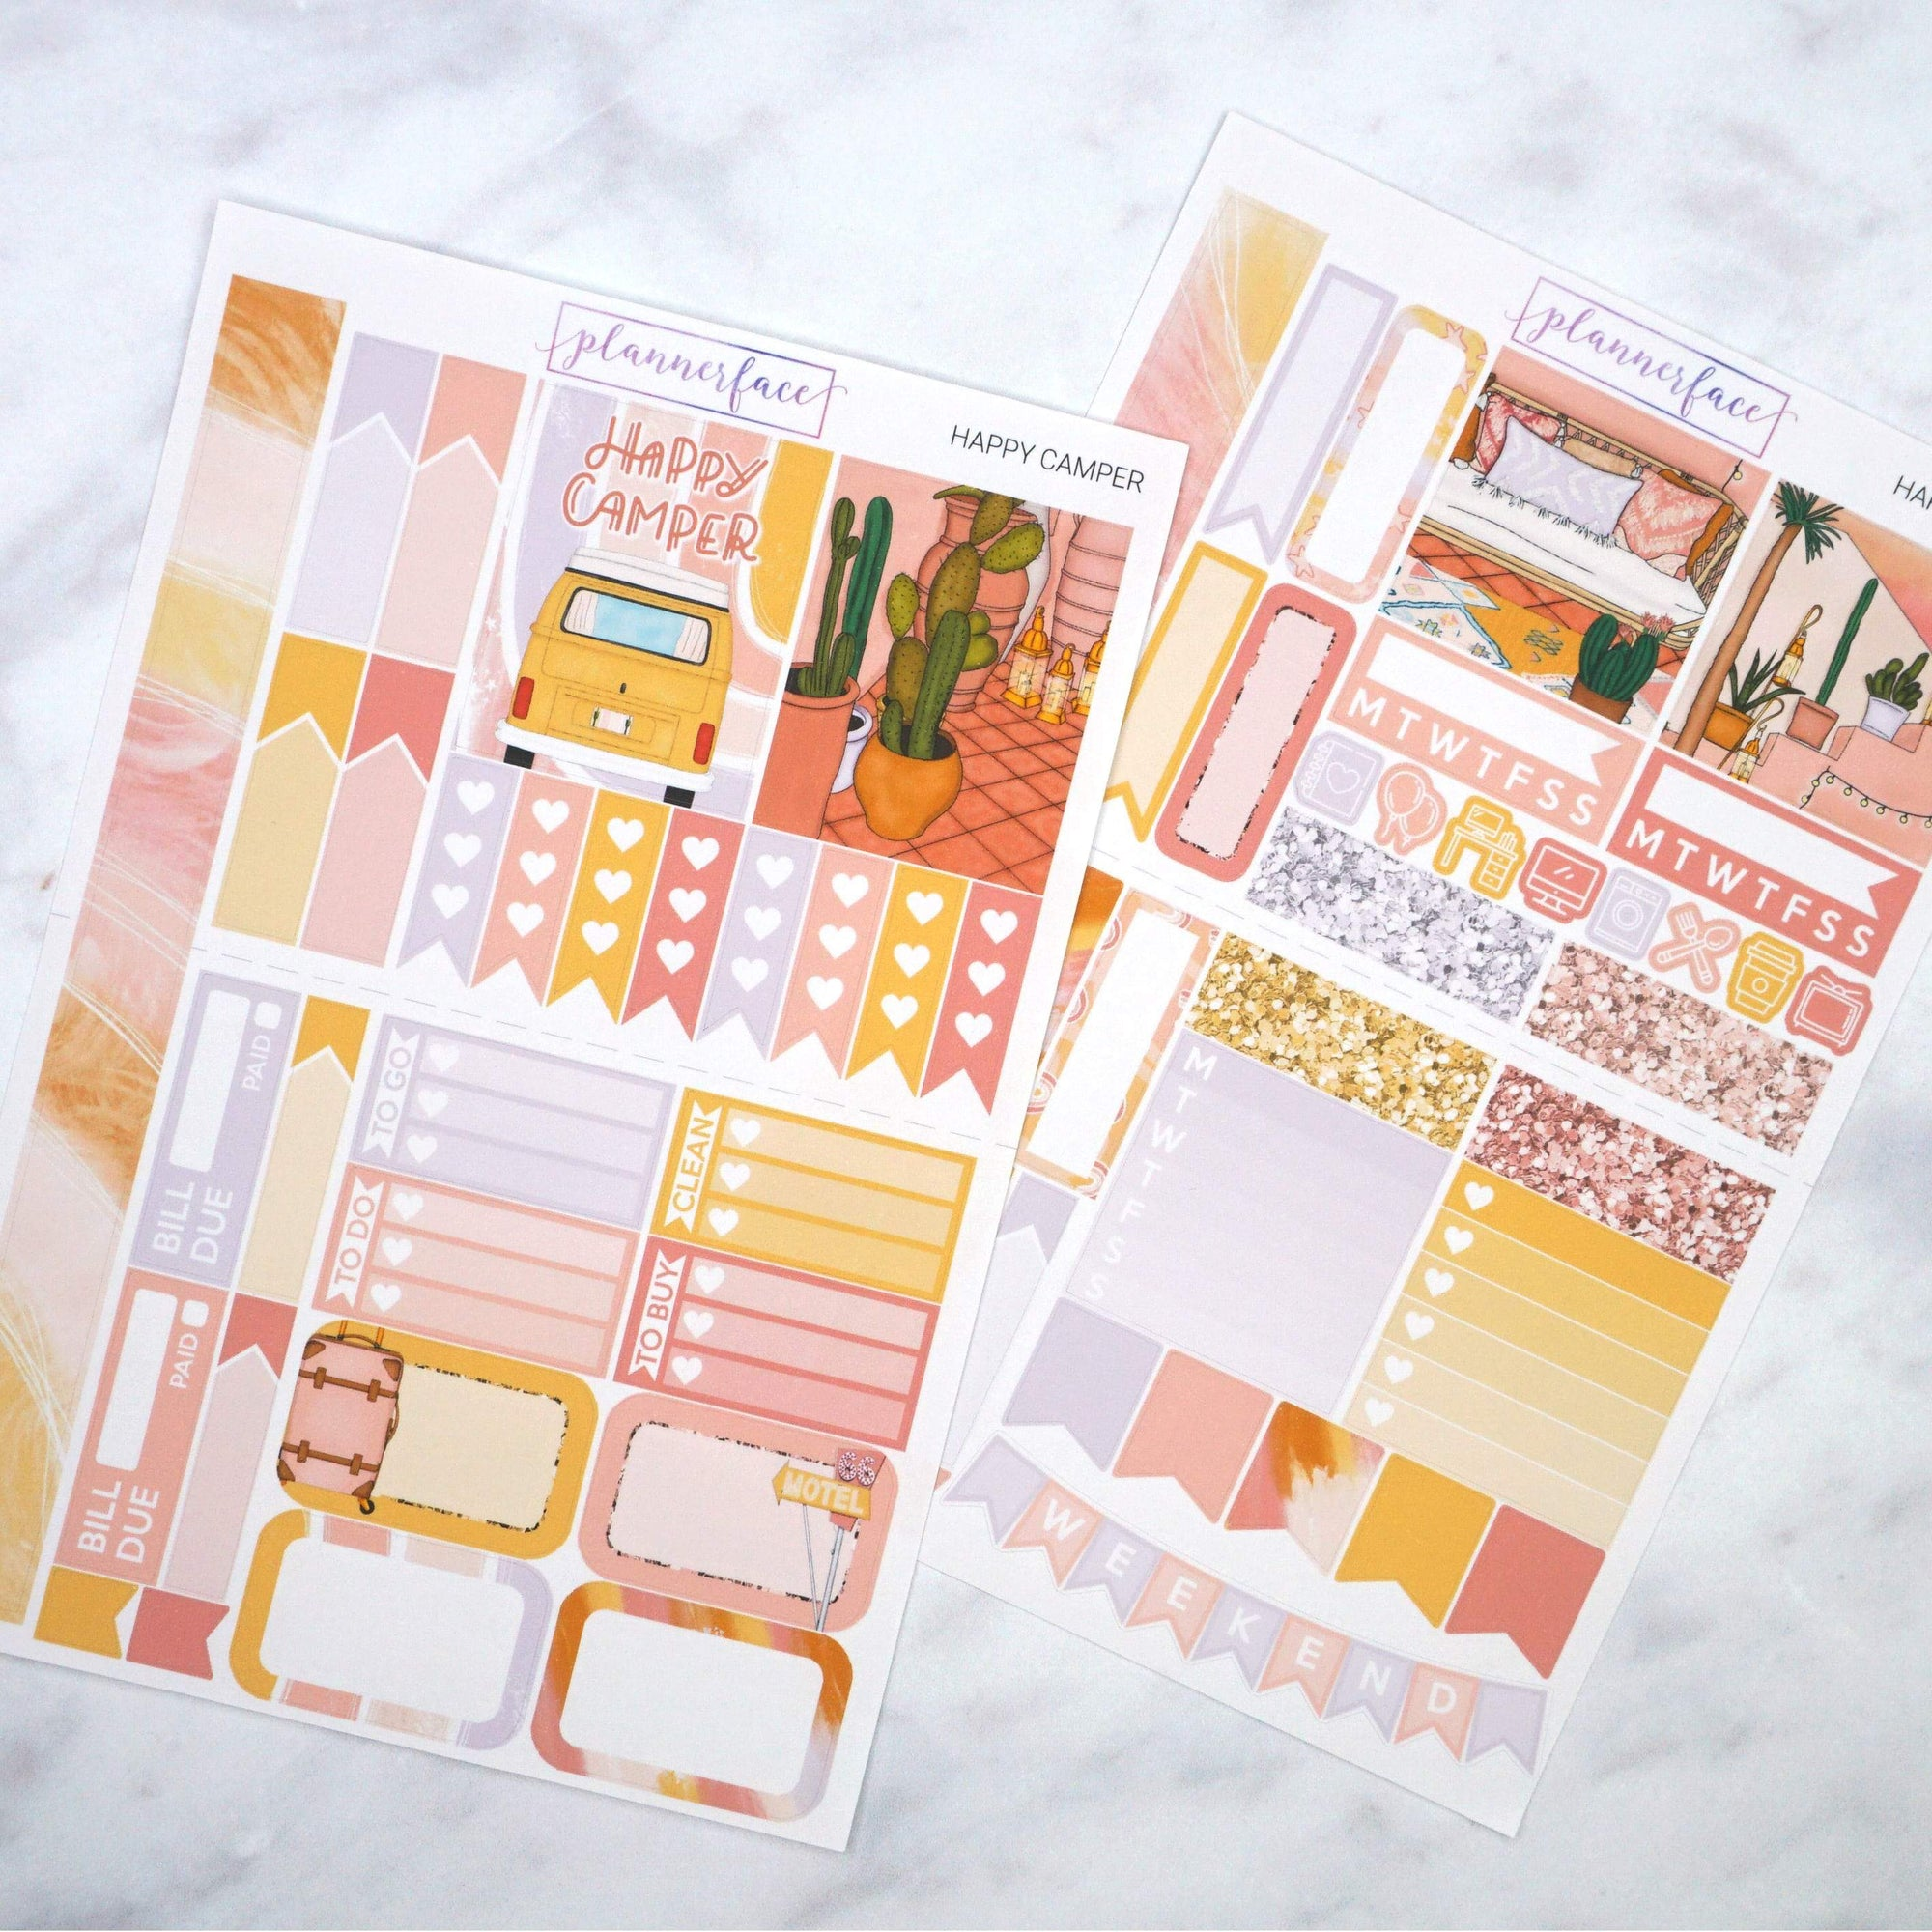 Plannerface Happy Camper Mini Kit Planner Stickers